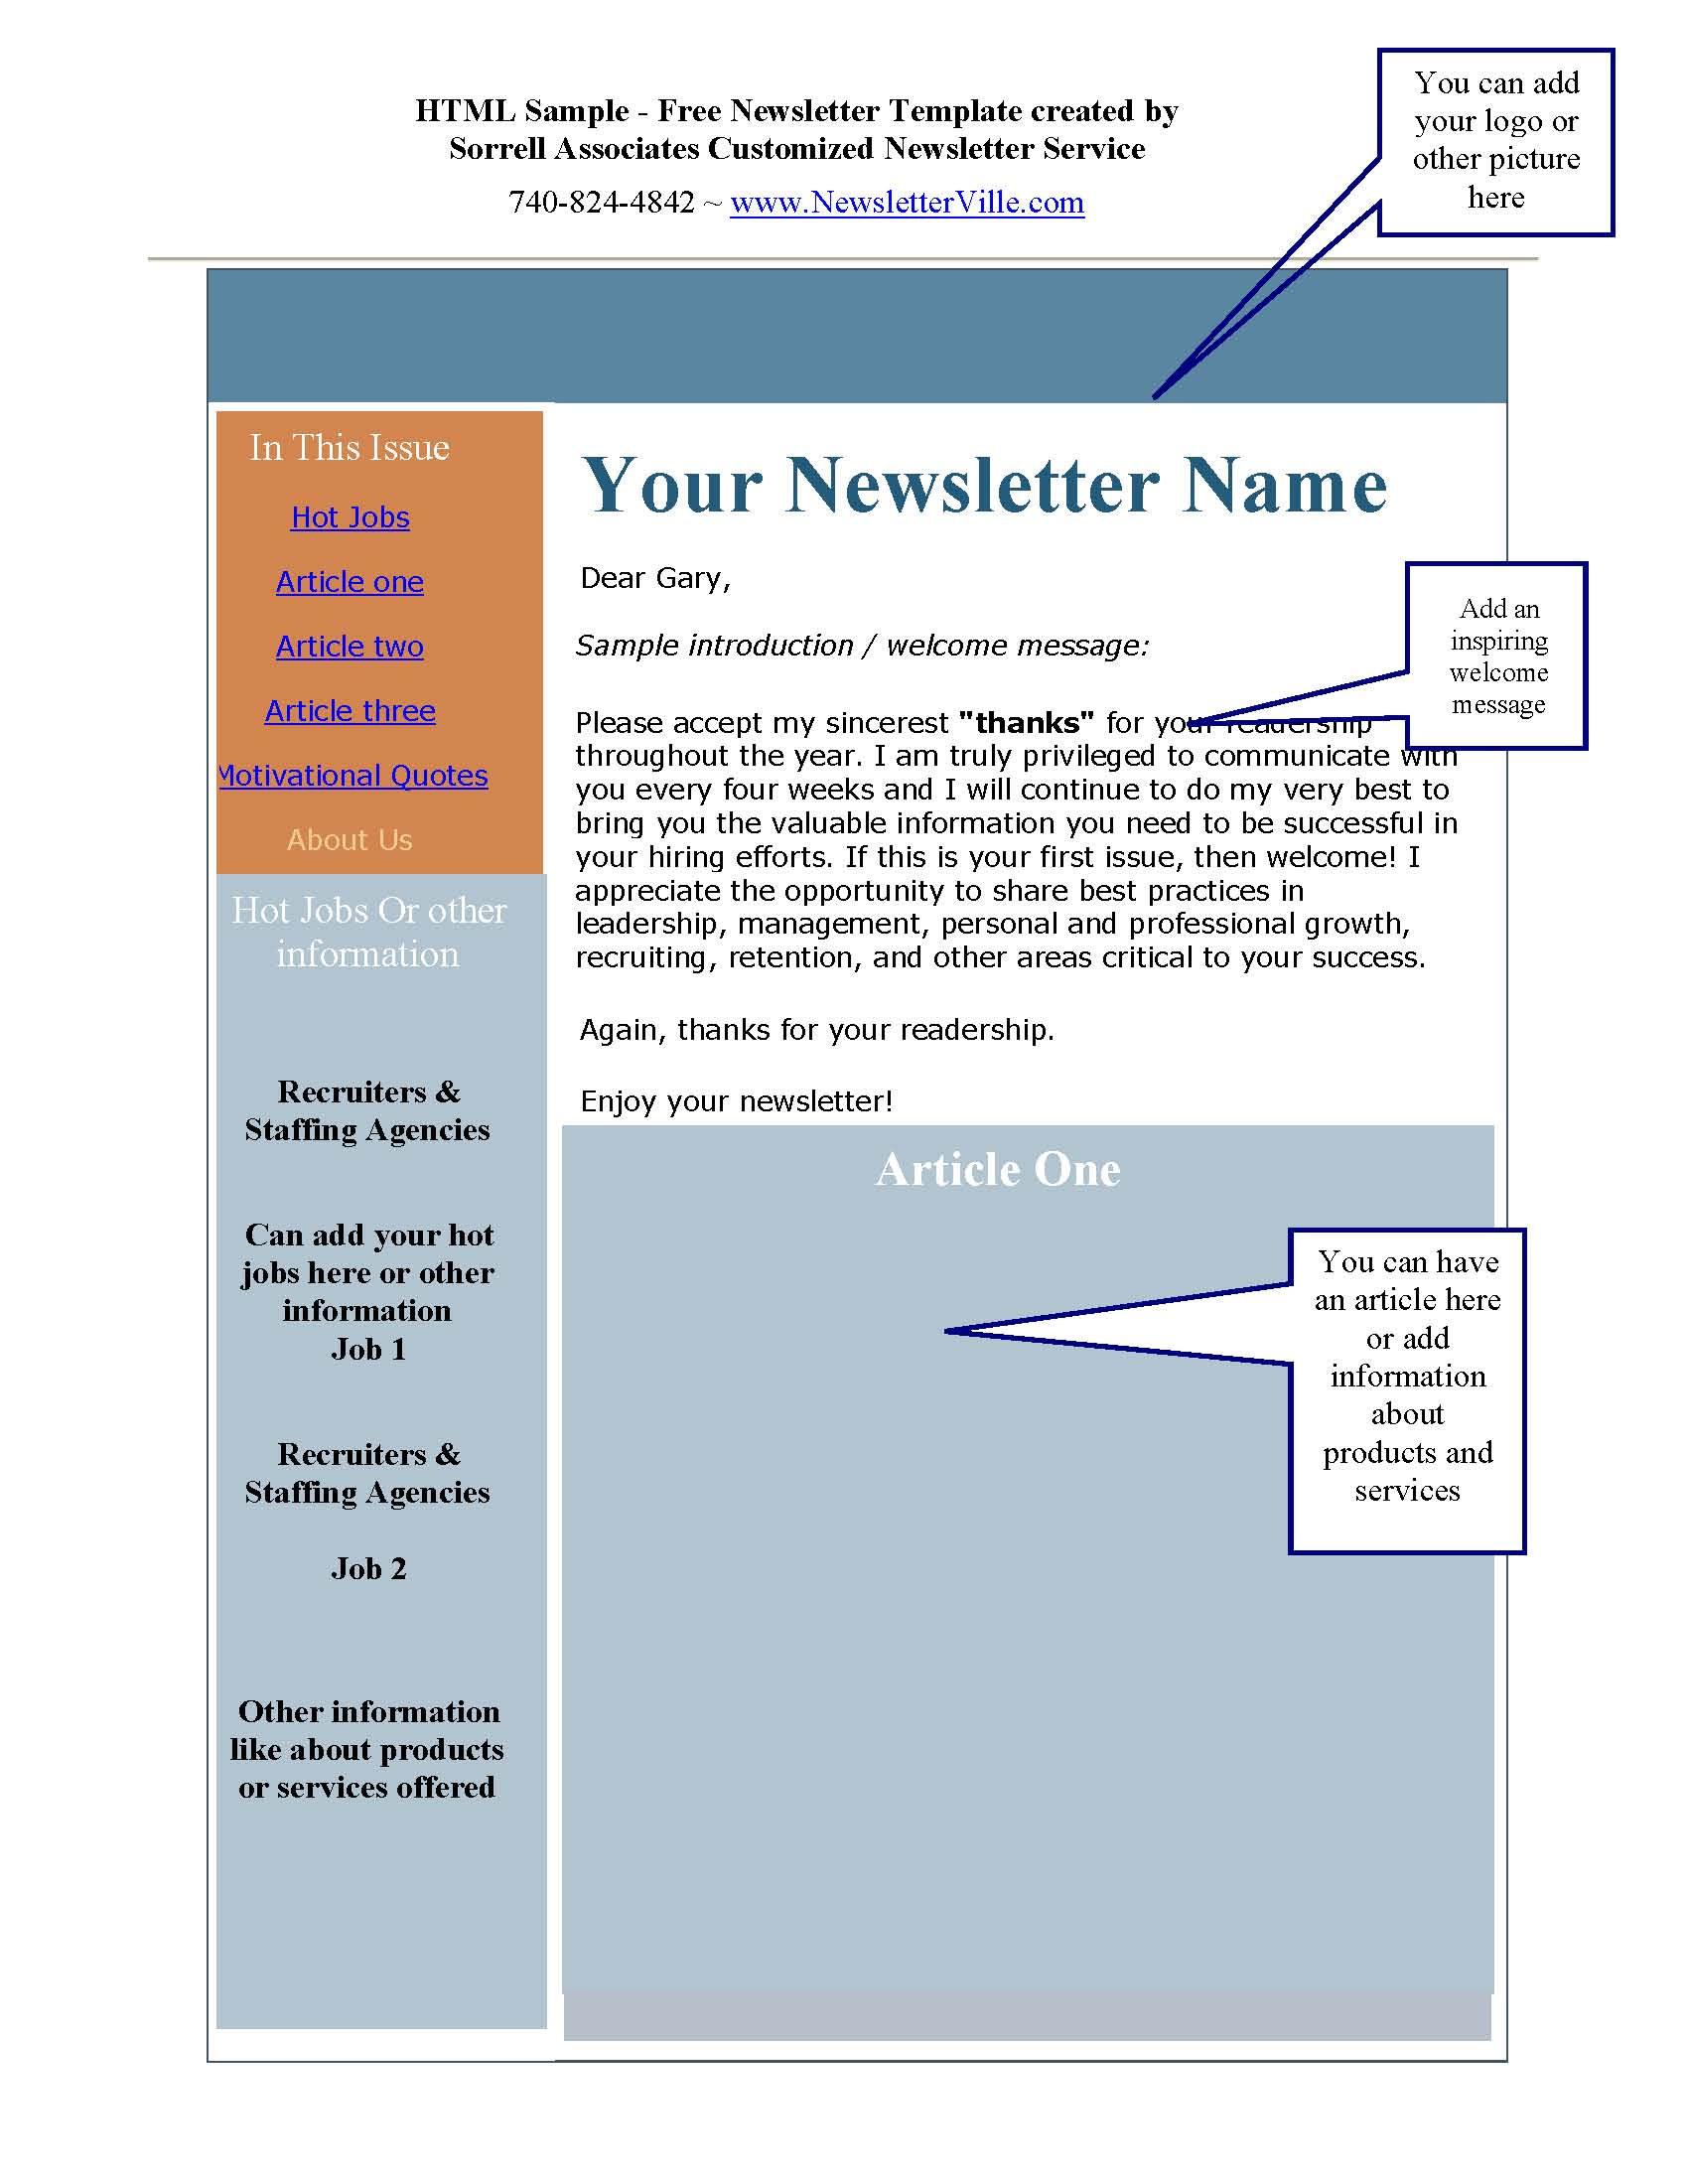 Customized Newsletter Service